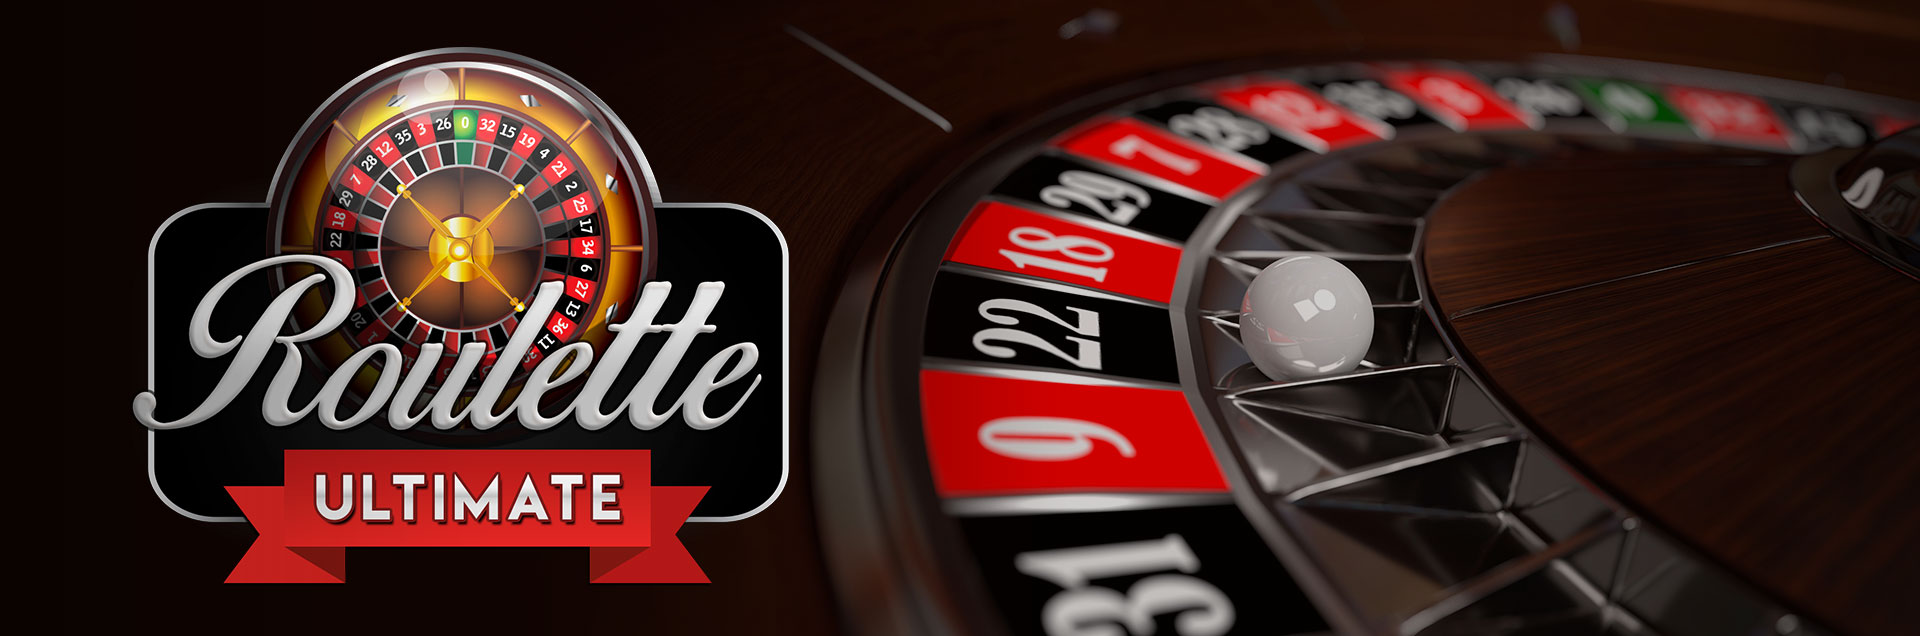 Roulette Ultimate logo